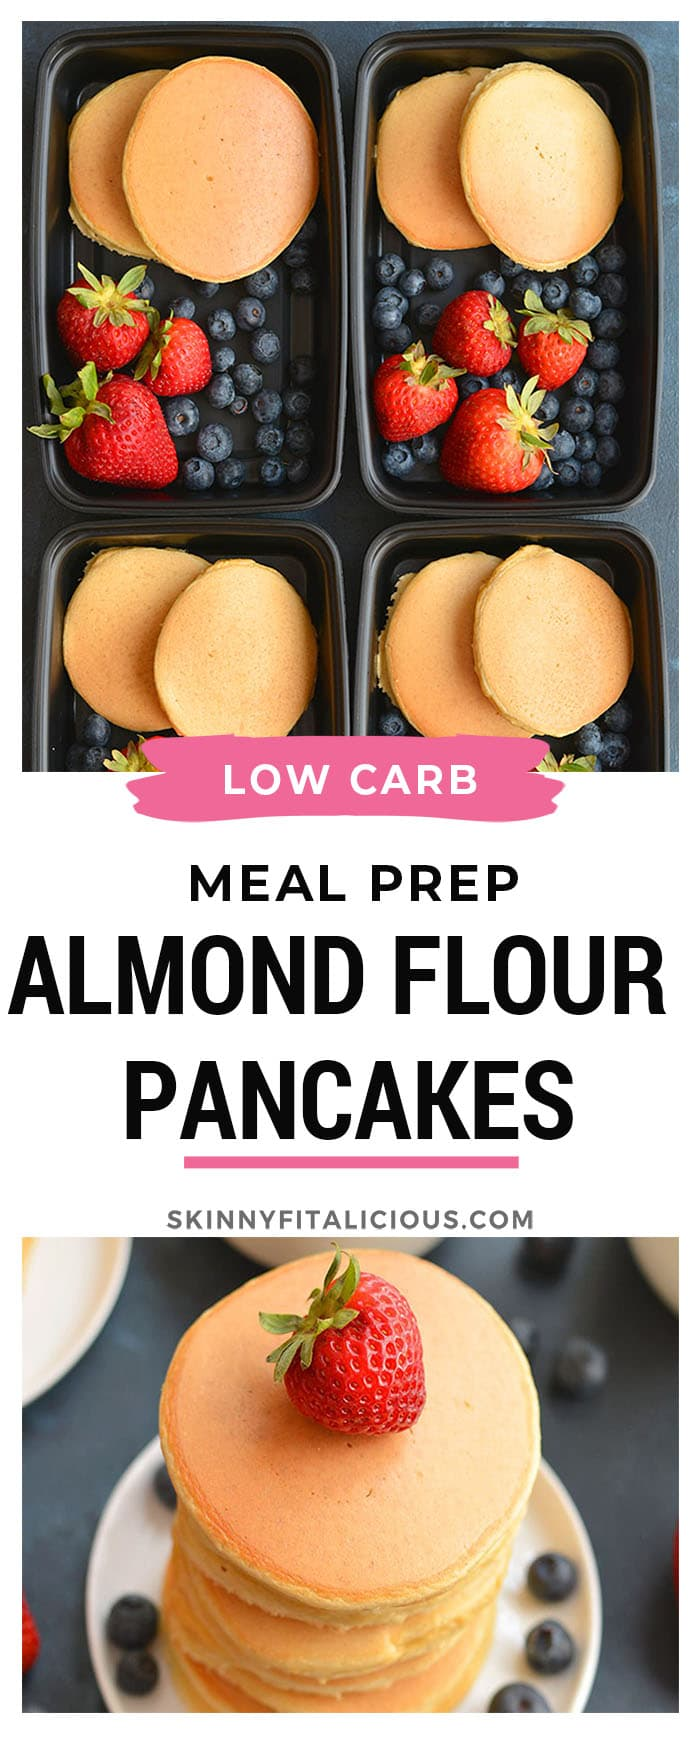 Meal Prep Almond Flour Pancakes! Made with 6 ingredients, these hearty pancakes have no added sugar, are low carb, high protein & delicious! Keep them in the refrigerator or freezer for an easy meal prep breakfast. Low Carb + Paleo + Gluten Free + Low Calorie